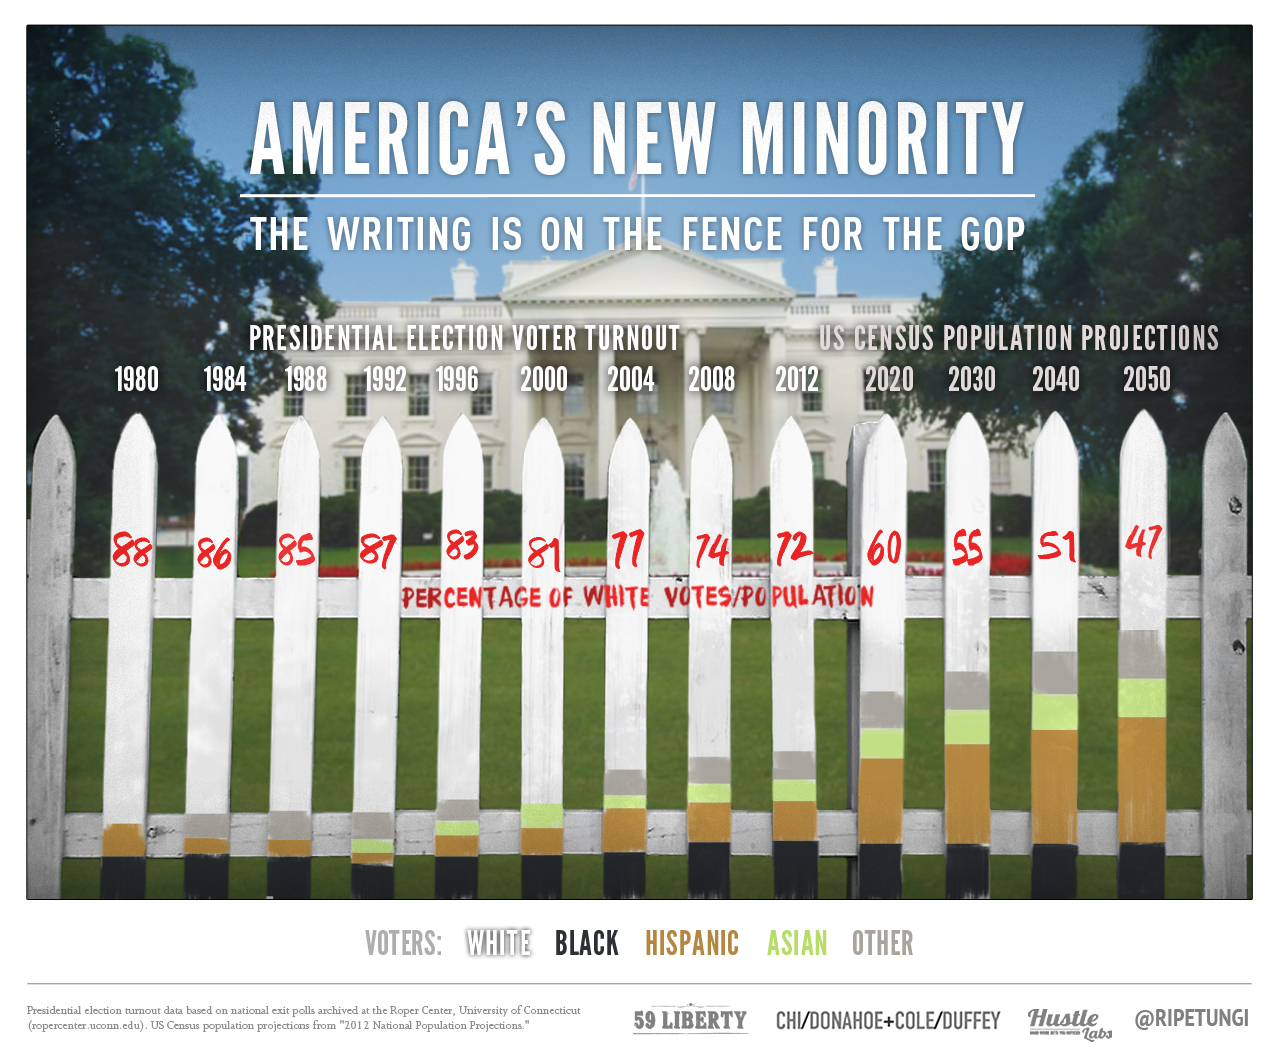 americas-new-minority-the-writing-is-on-the-fence-for-the-gop_510aab7fa47a4